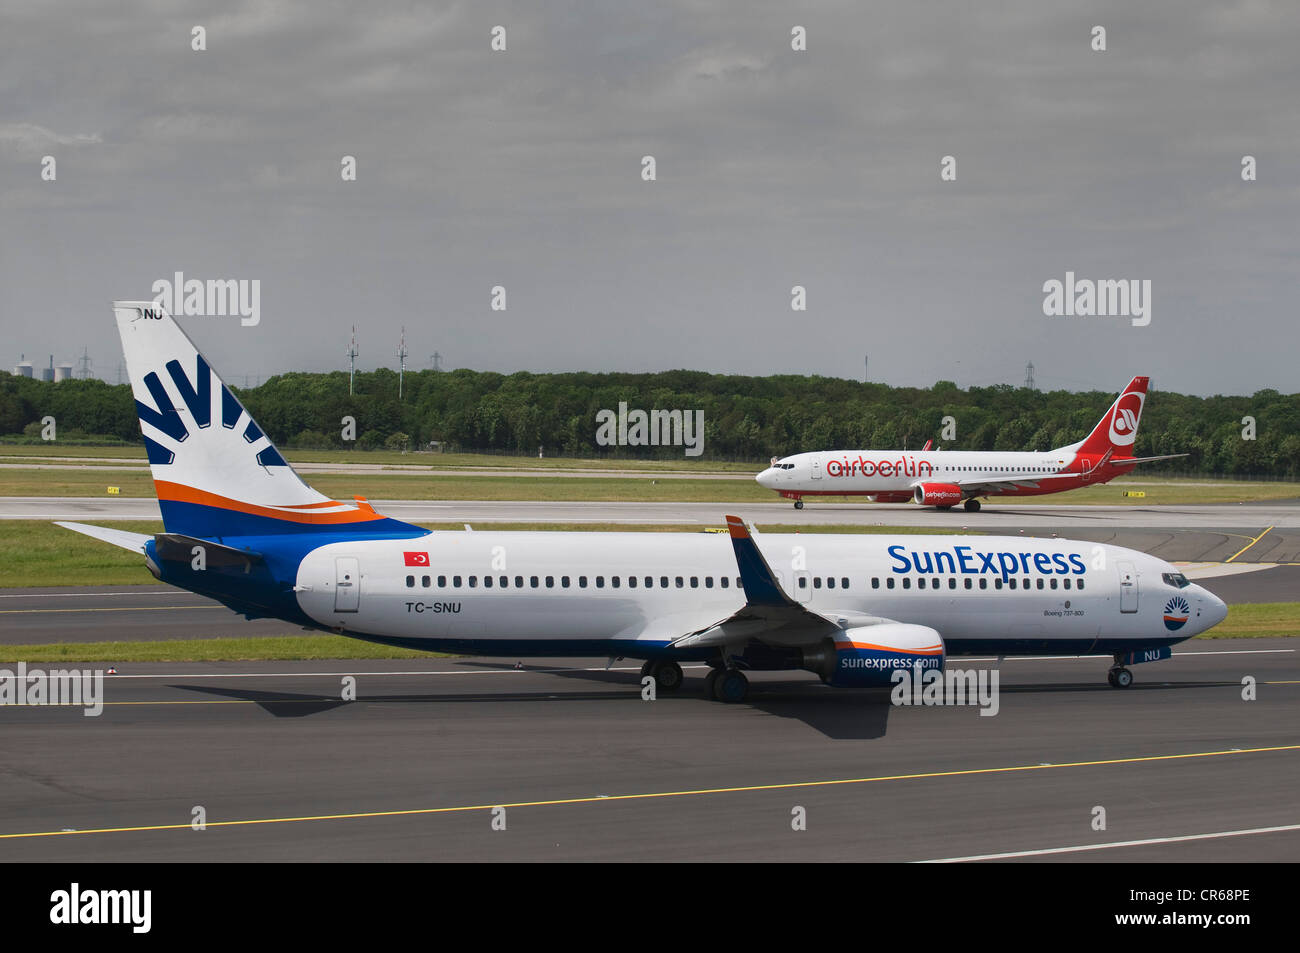 Boeing 737 800 of the Turkish SunExpress on the runway, behind an airberlin airplane, Duesseldorf International - Stock Image